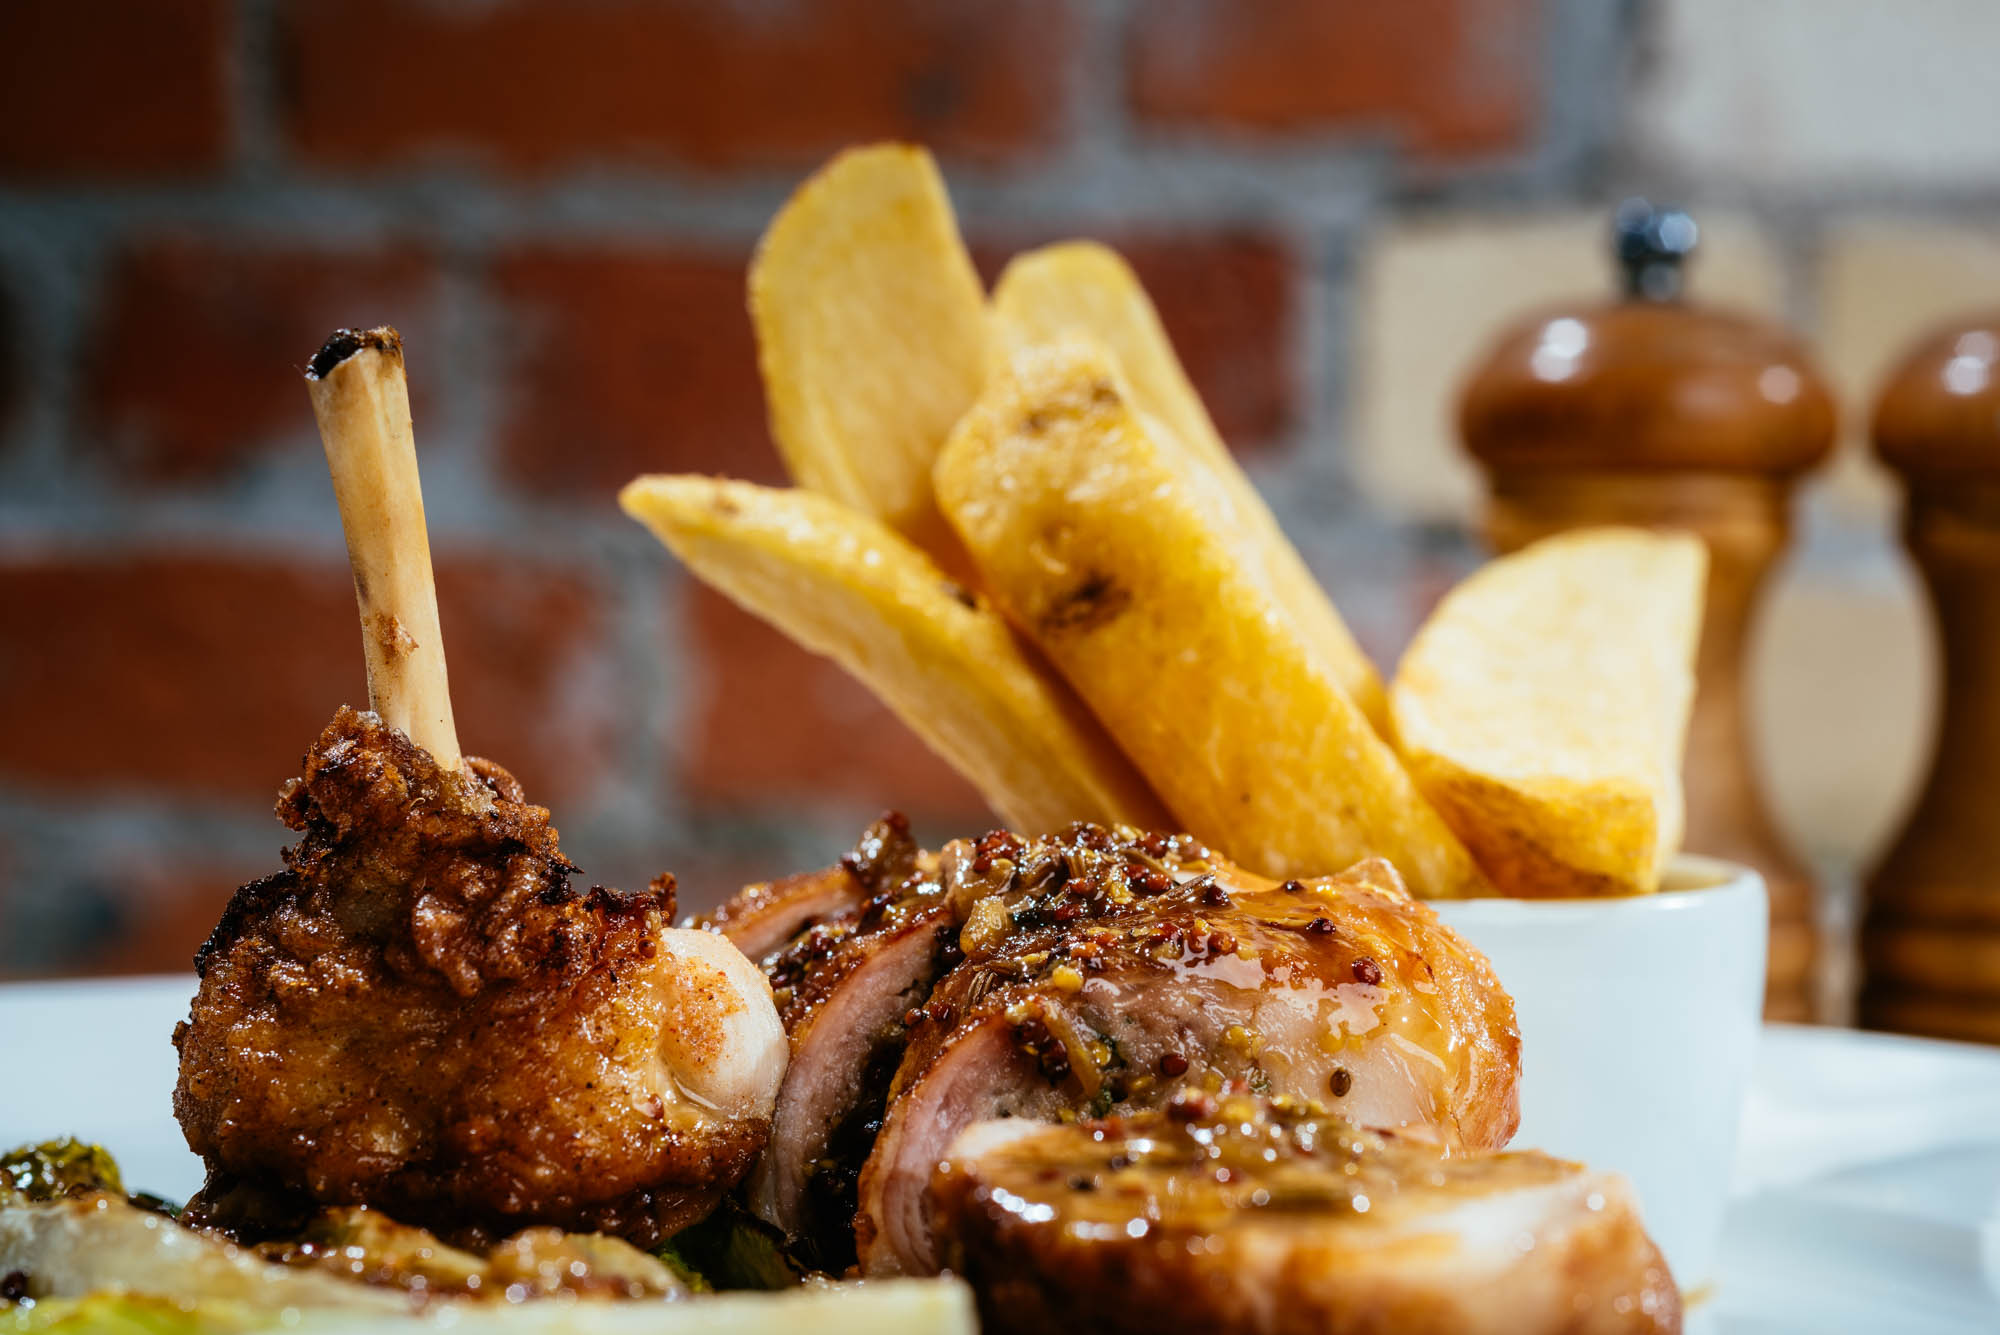 A photo of meat and chips on a plate in front of a red brick wall